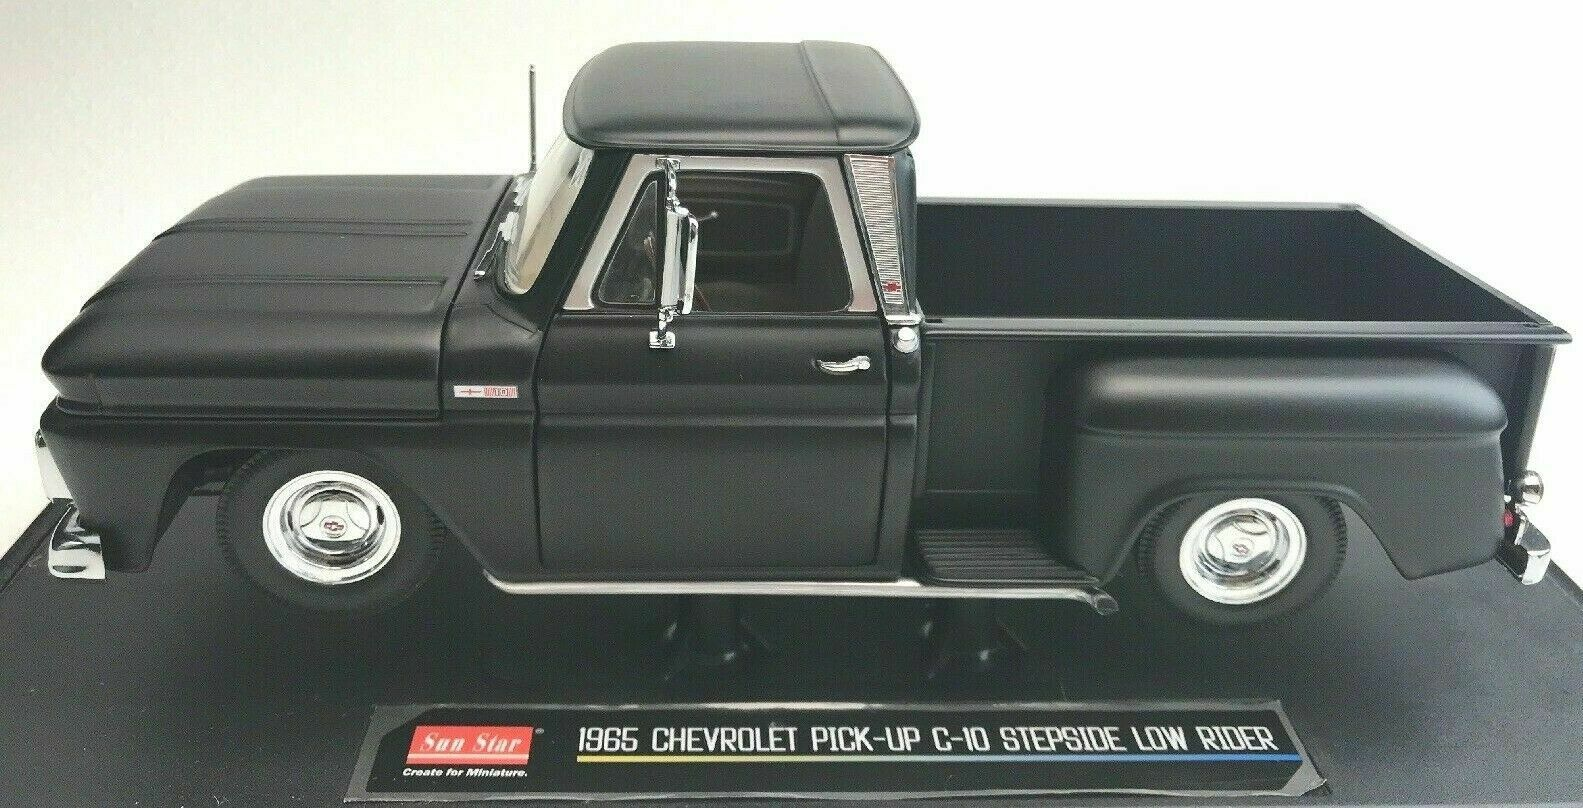 1 18 Sunstar chevrolet pick up c-10 stepside Low Rider nero rareza